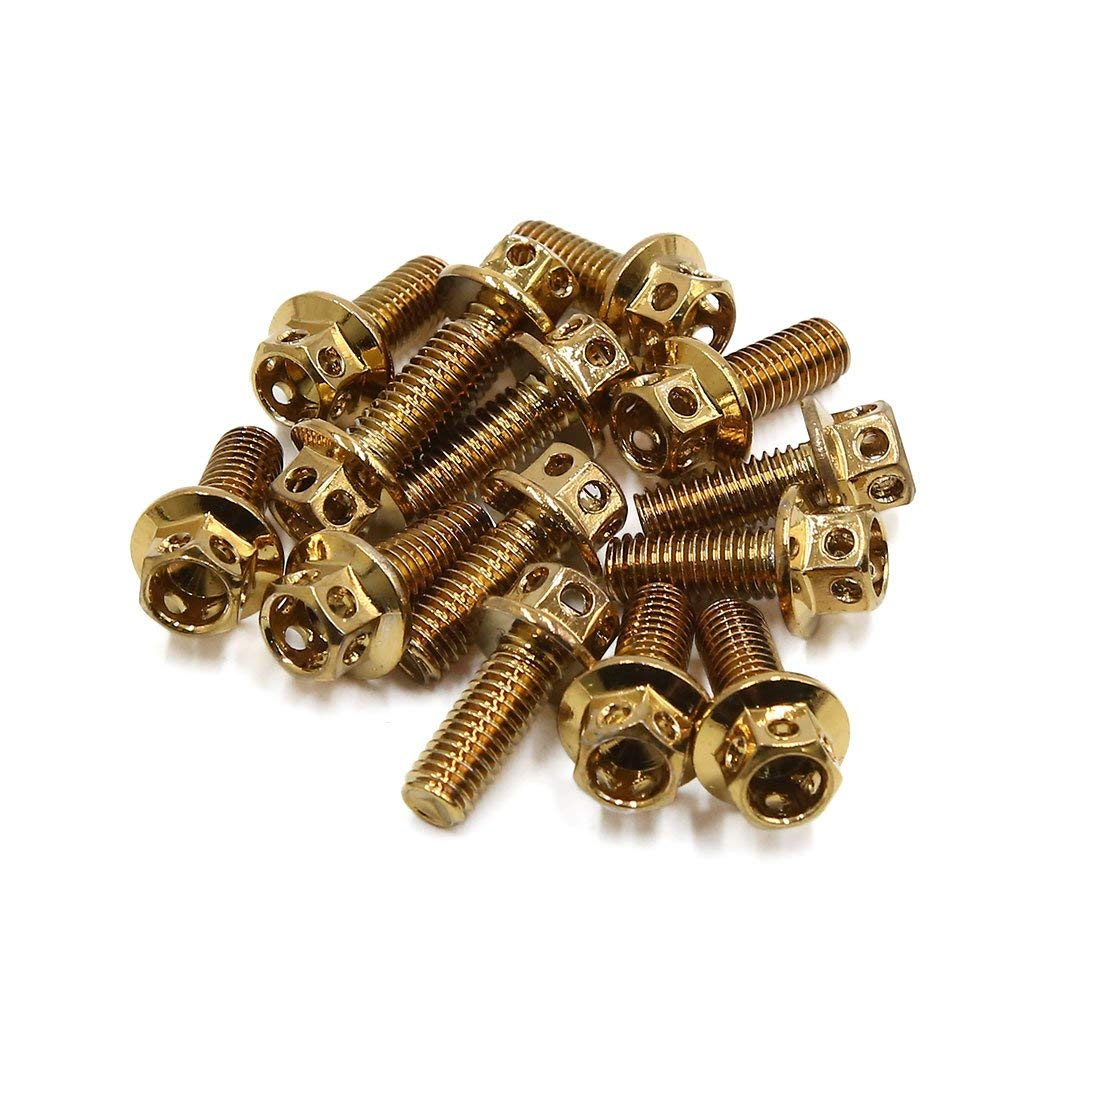 uxcell 14pcs Gold Tone M6 x 15 Motorcycle Titanium Alloy Hexagon Bolts Clips Screws